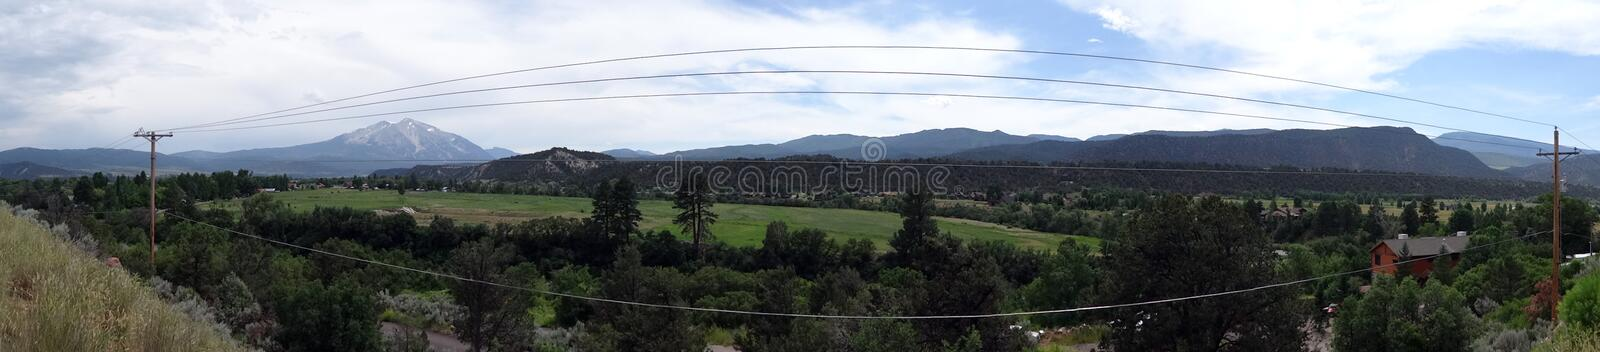 Panoramic of Powerline running through the town of Carbondale. In Colorado, USA stock photo